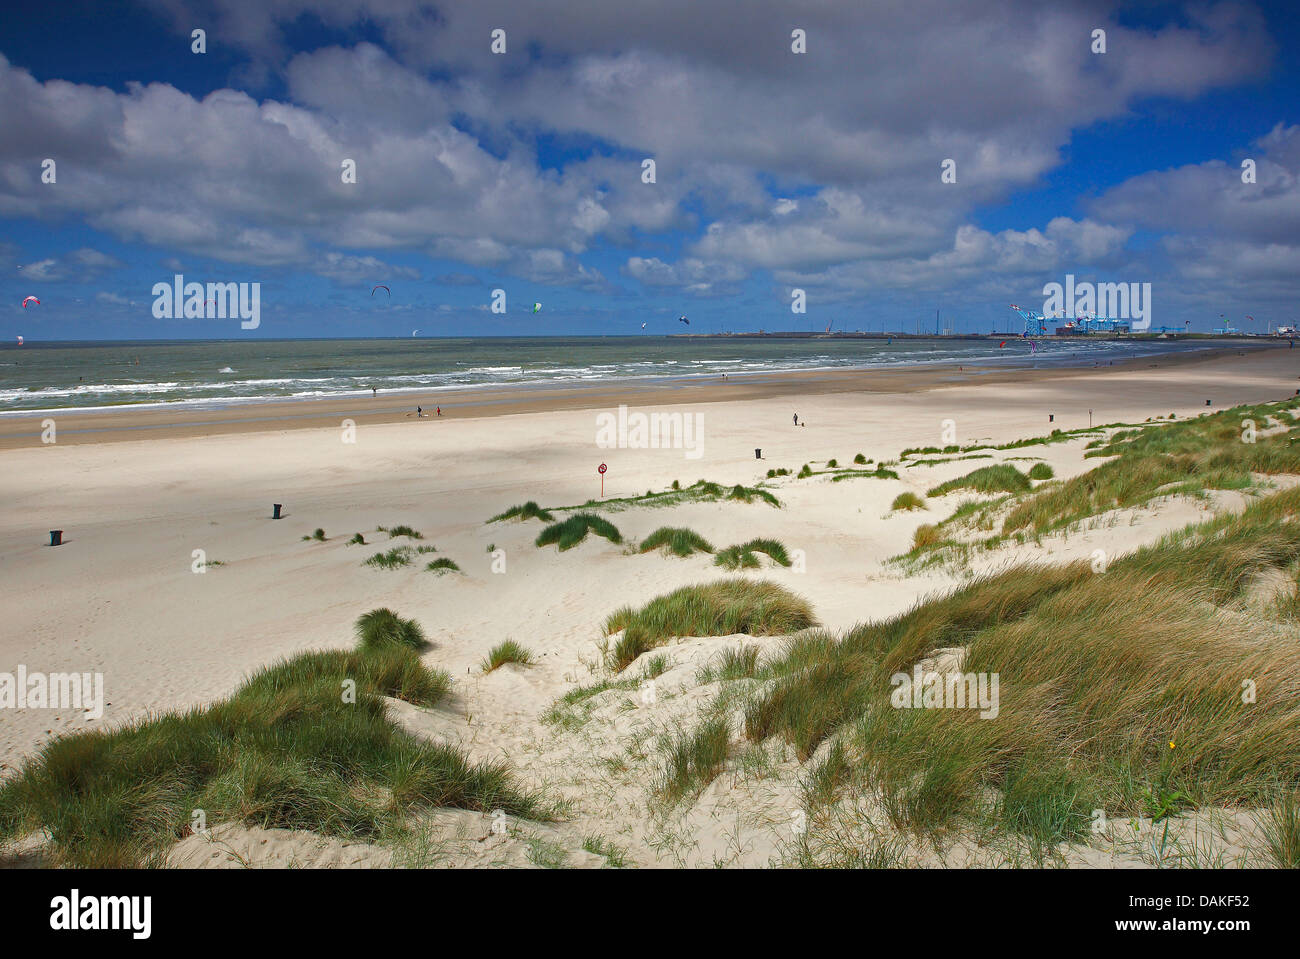 kitesurfers at the beach of Blankenberge with the harbour of Zeebrugge in the background, Belgium, West Flanders, - Stock Image